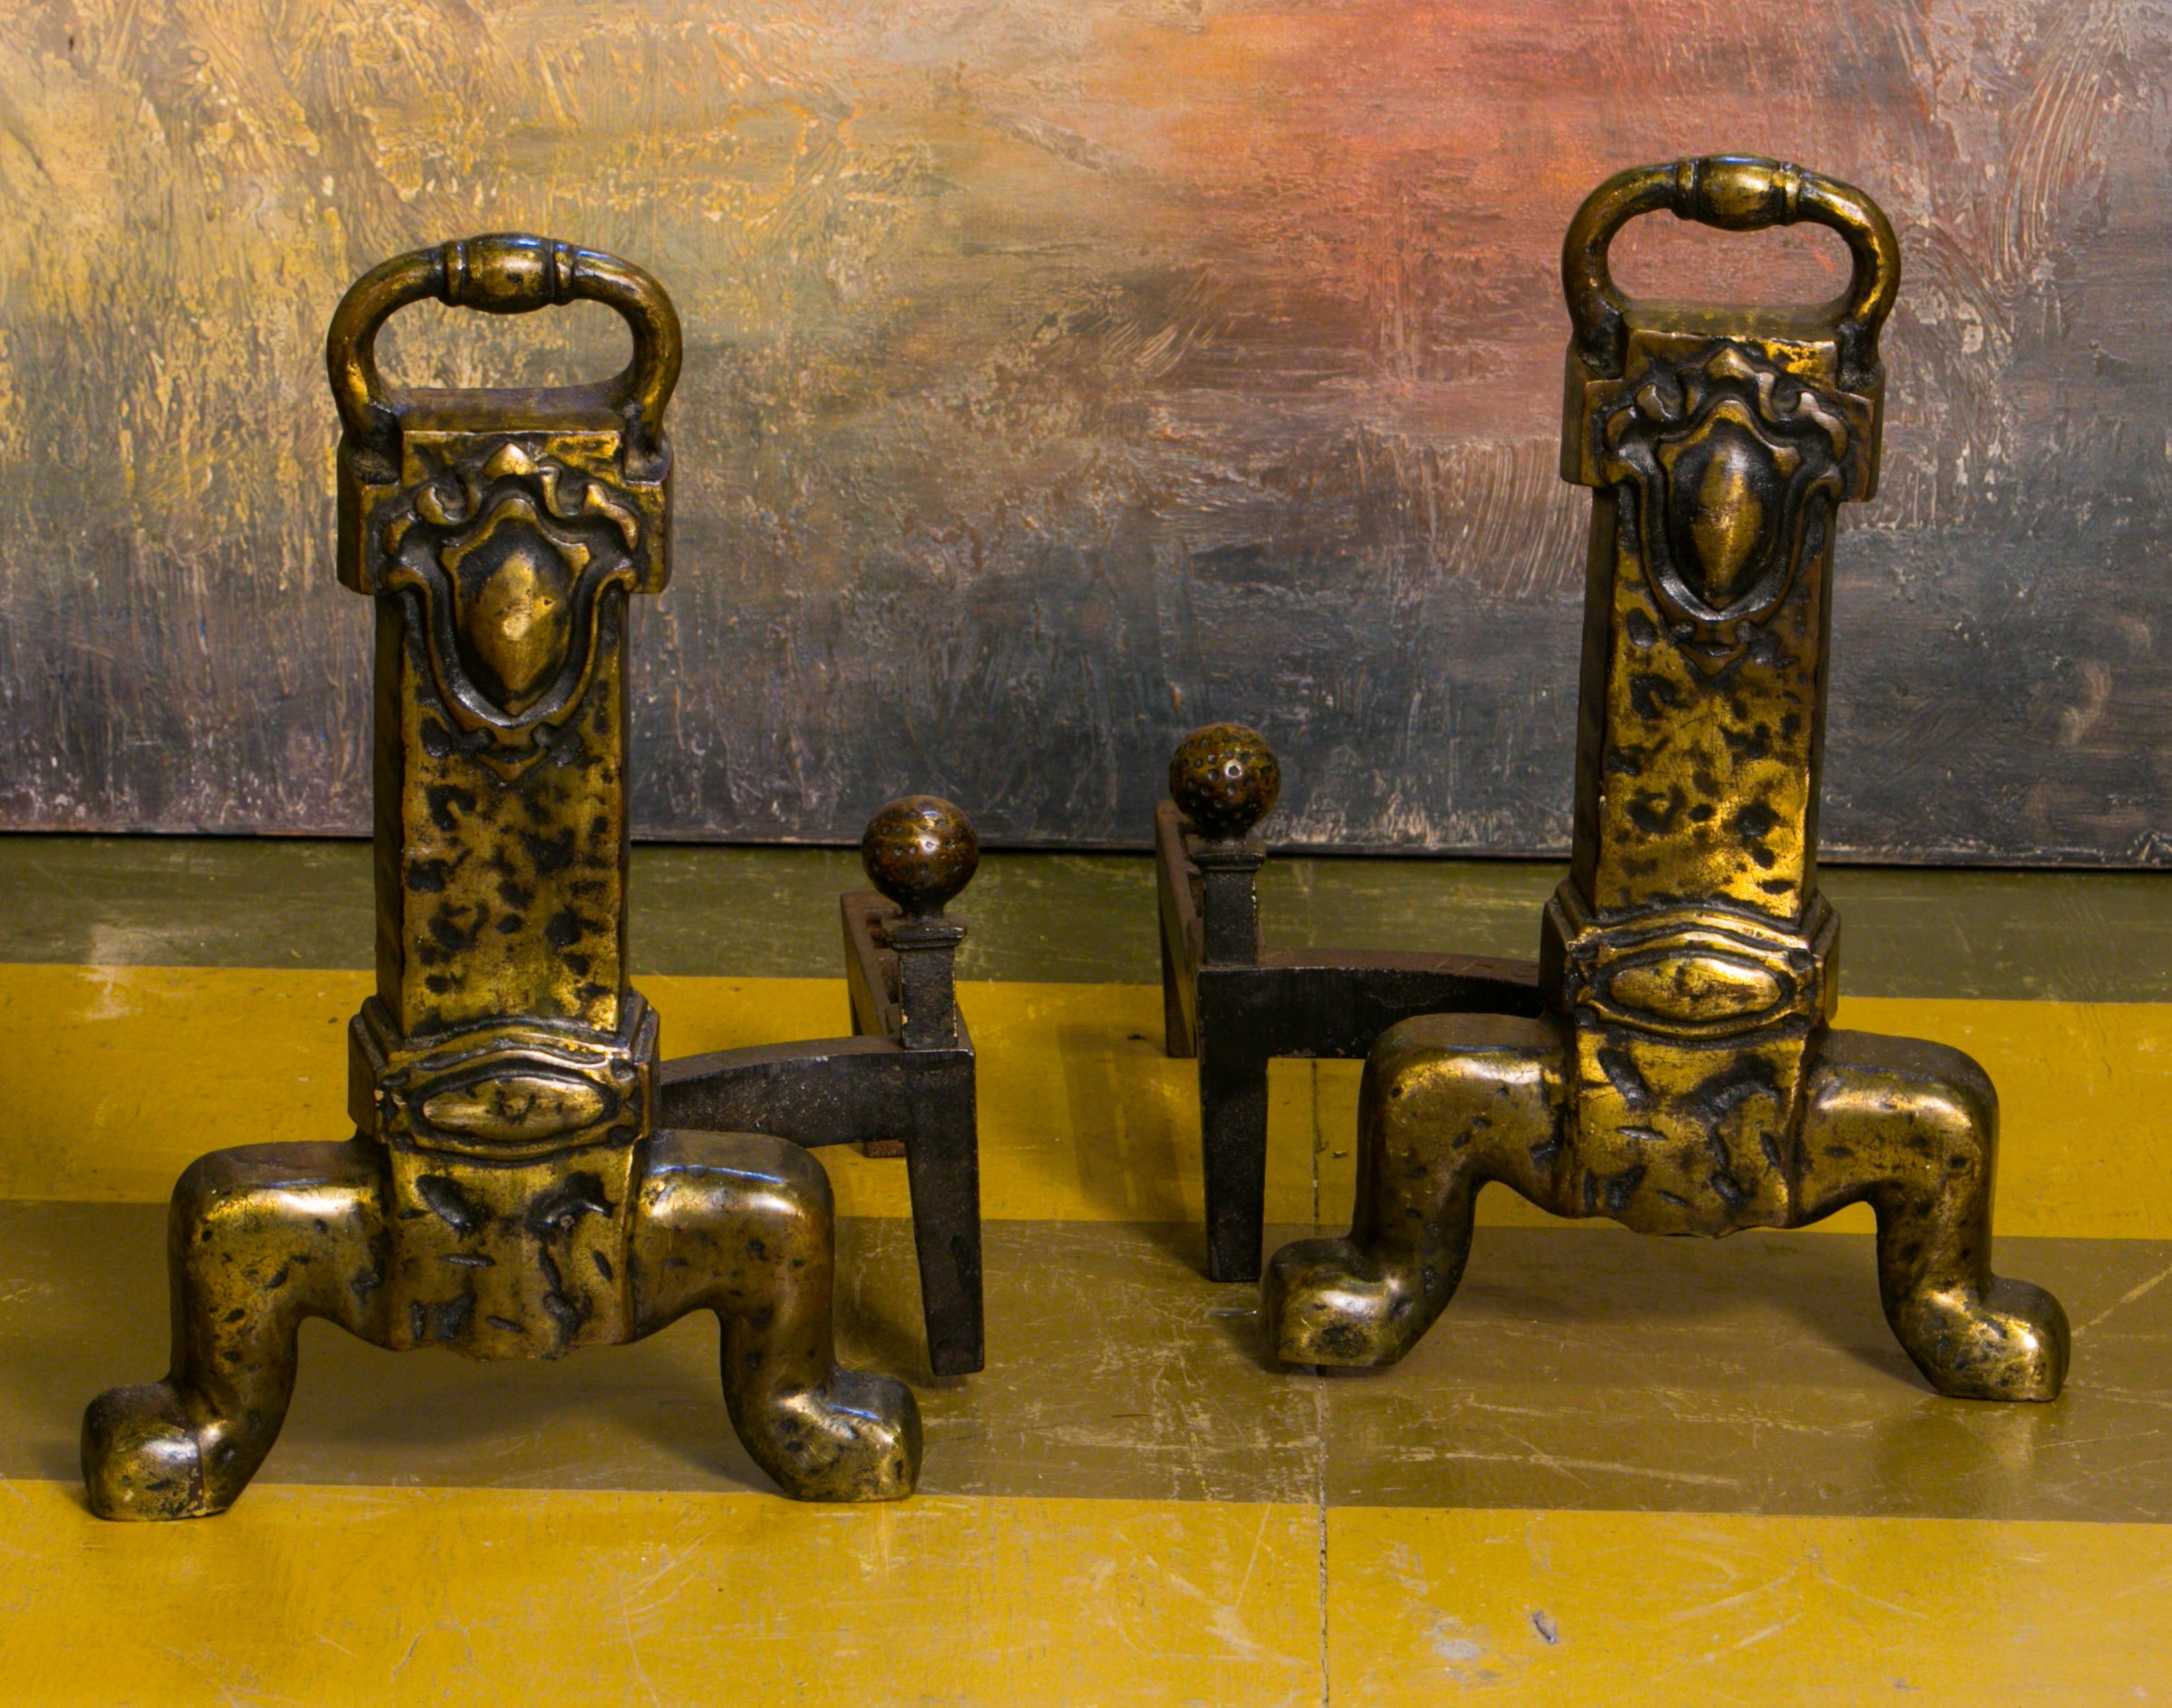 Pair of Unusual Arts & Crafts Style Bronze Andirons from Belgium, circa 1930